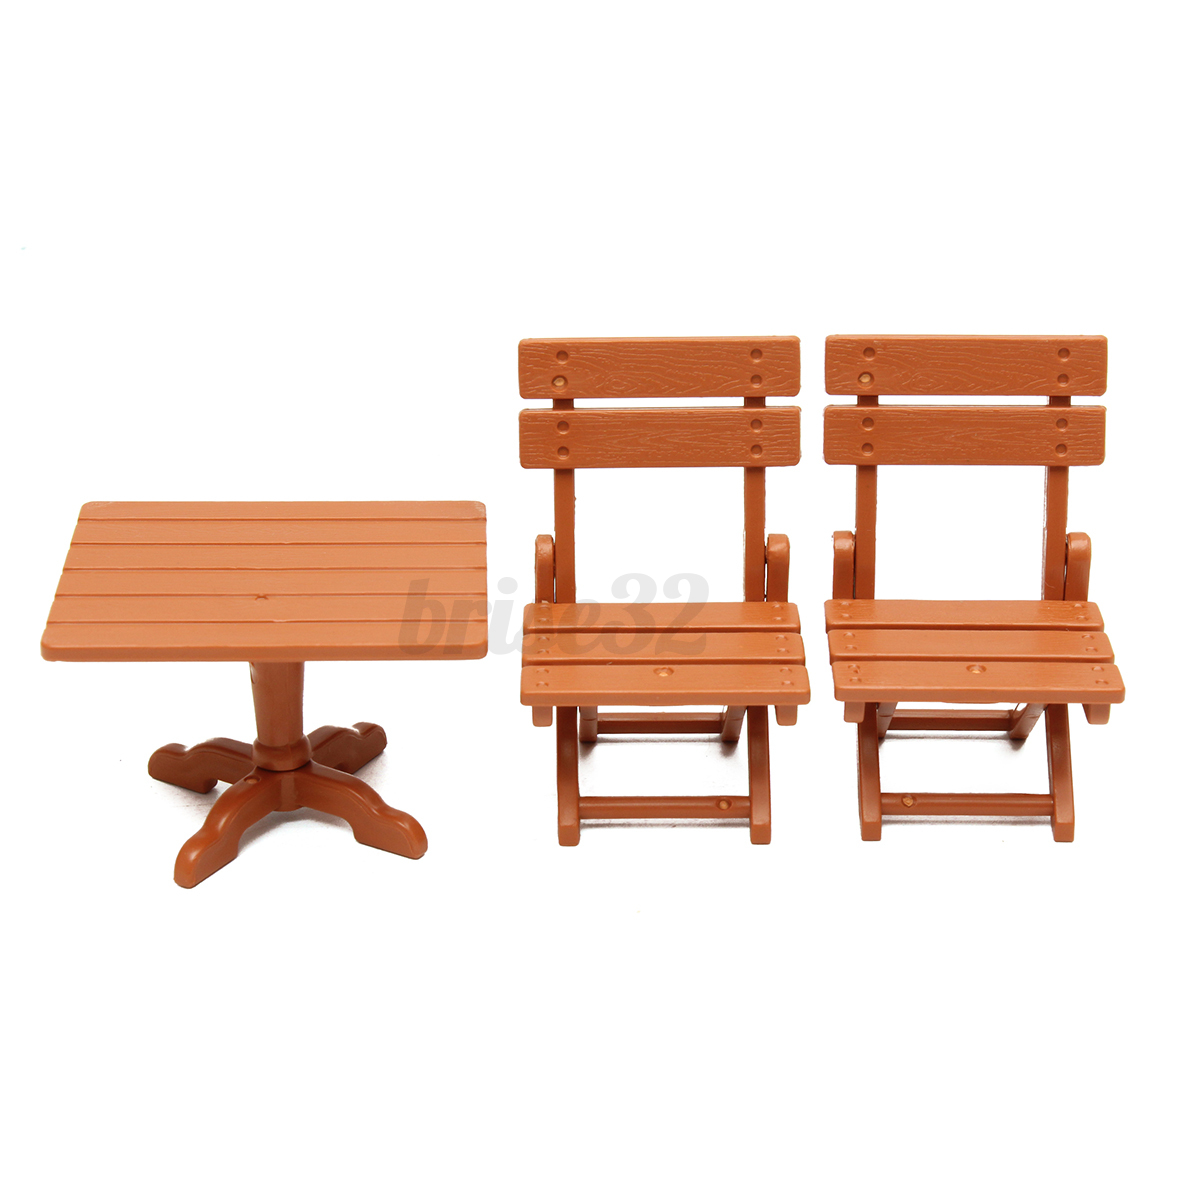 Plastic Dining Table Miniature Kitchen Doll House Furniture Toy Set Gifts Decor Ebay